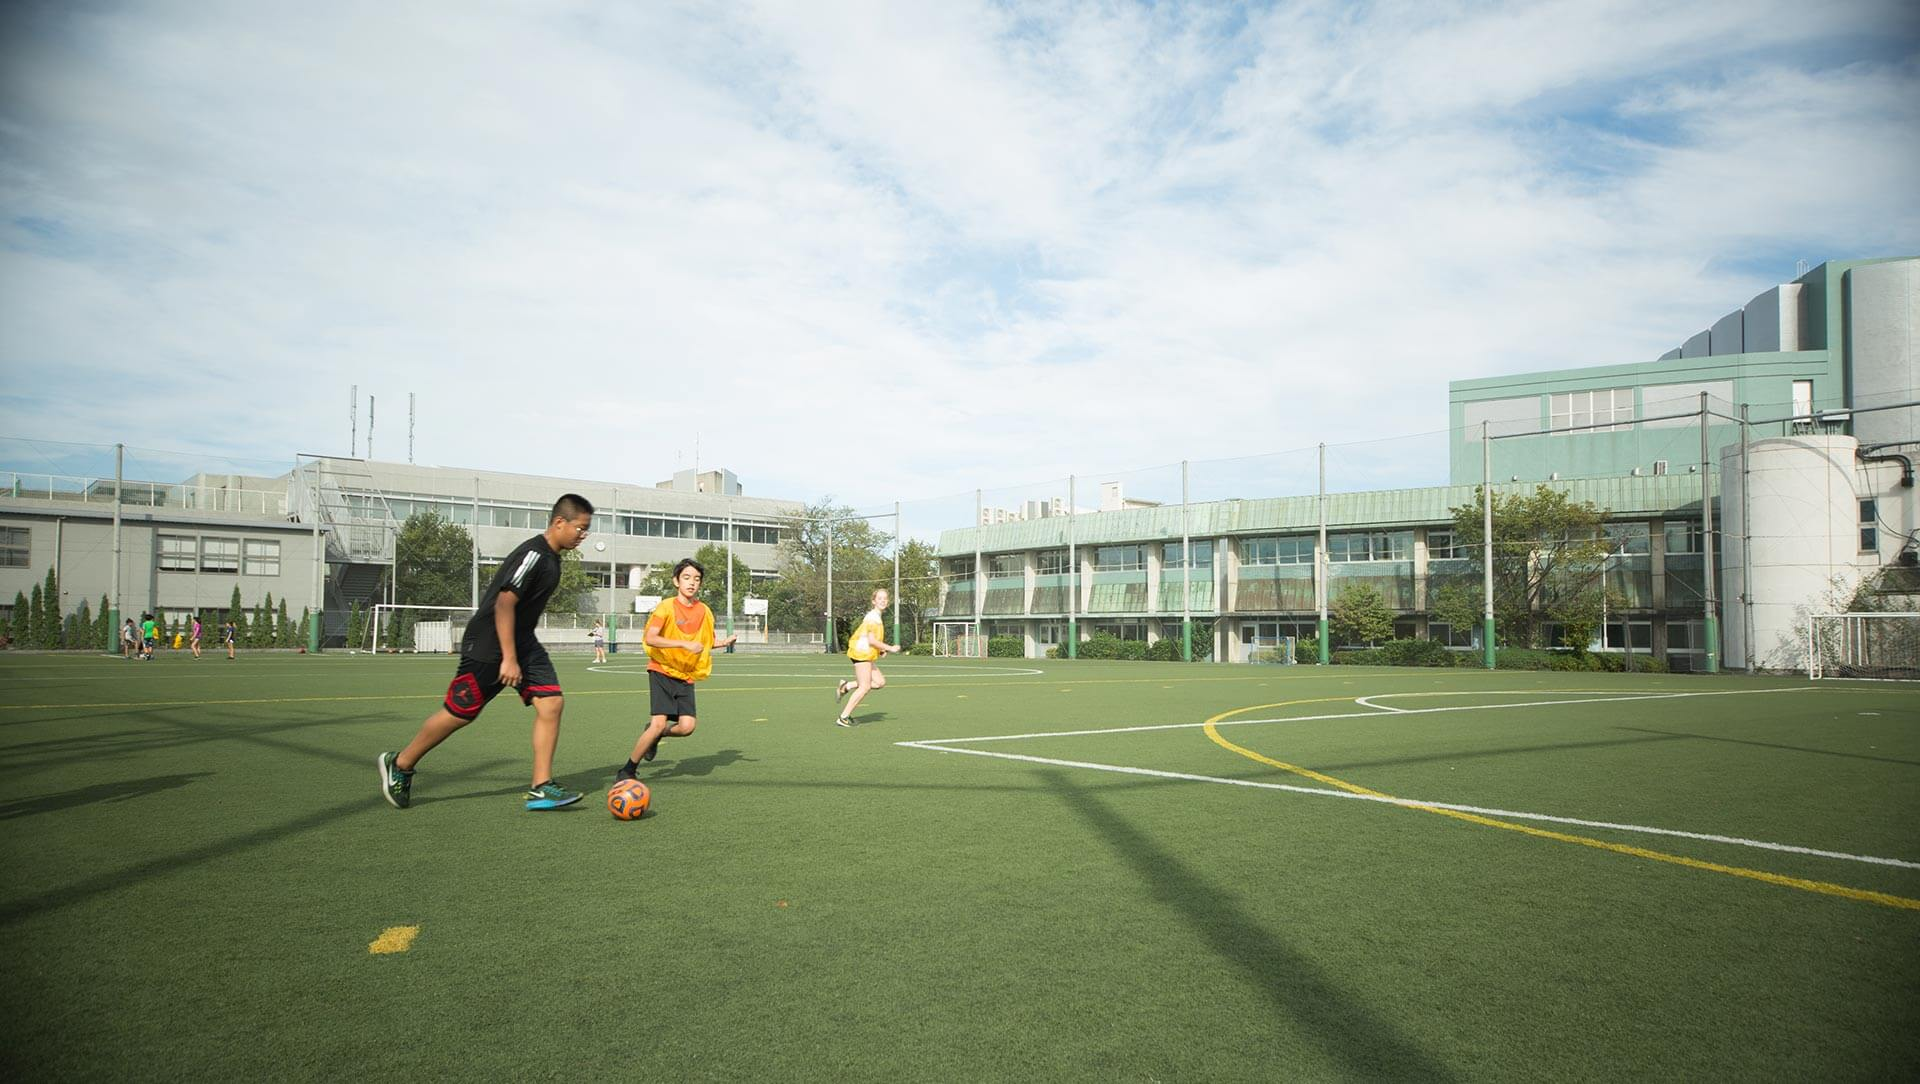 Students Play Soccer on the ASIJ Middle School Field